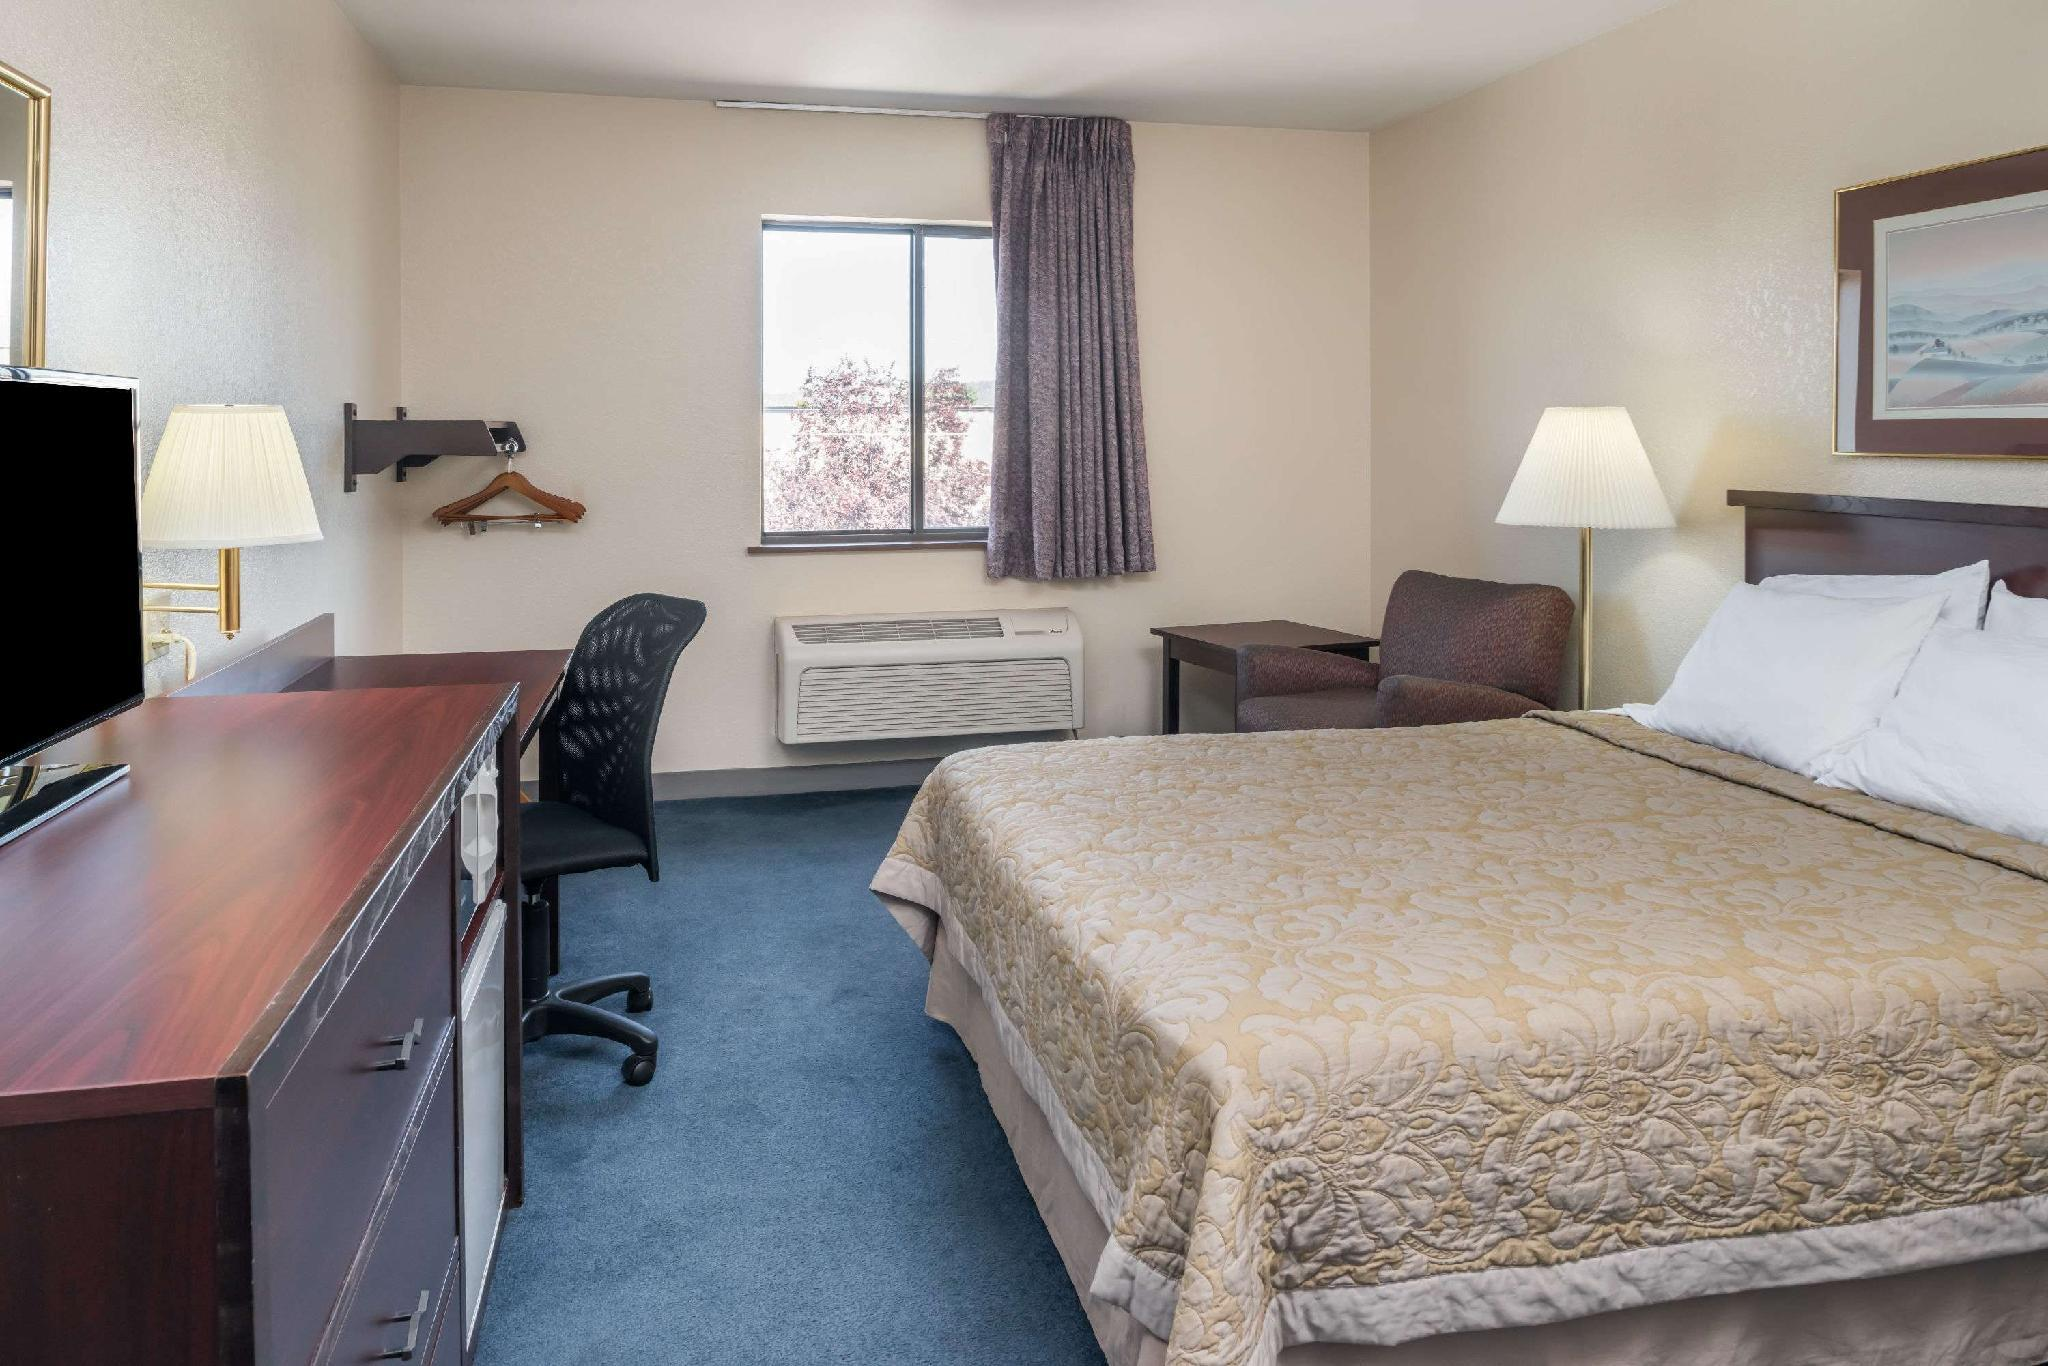 1 Queen Bed, Mobility Accessible Room, Non-Smoking